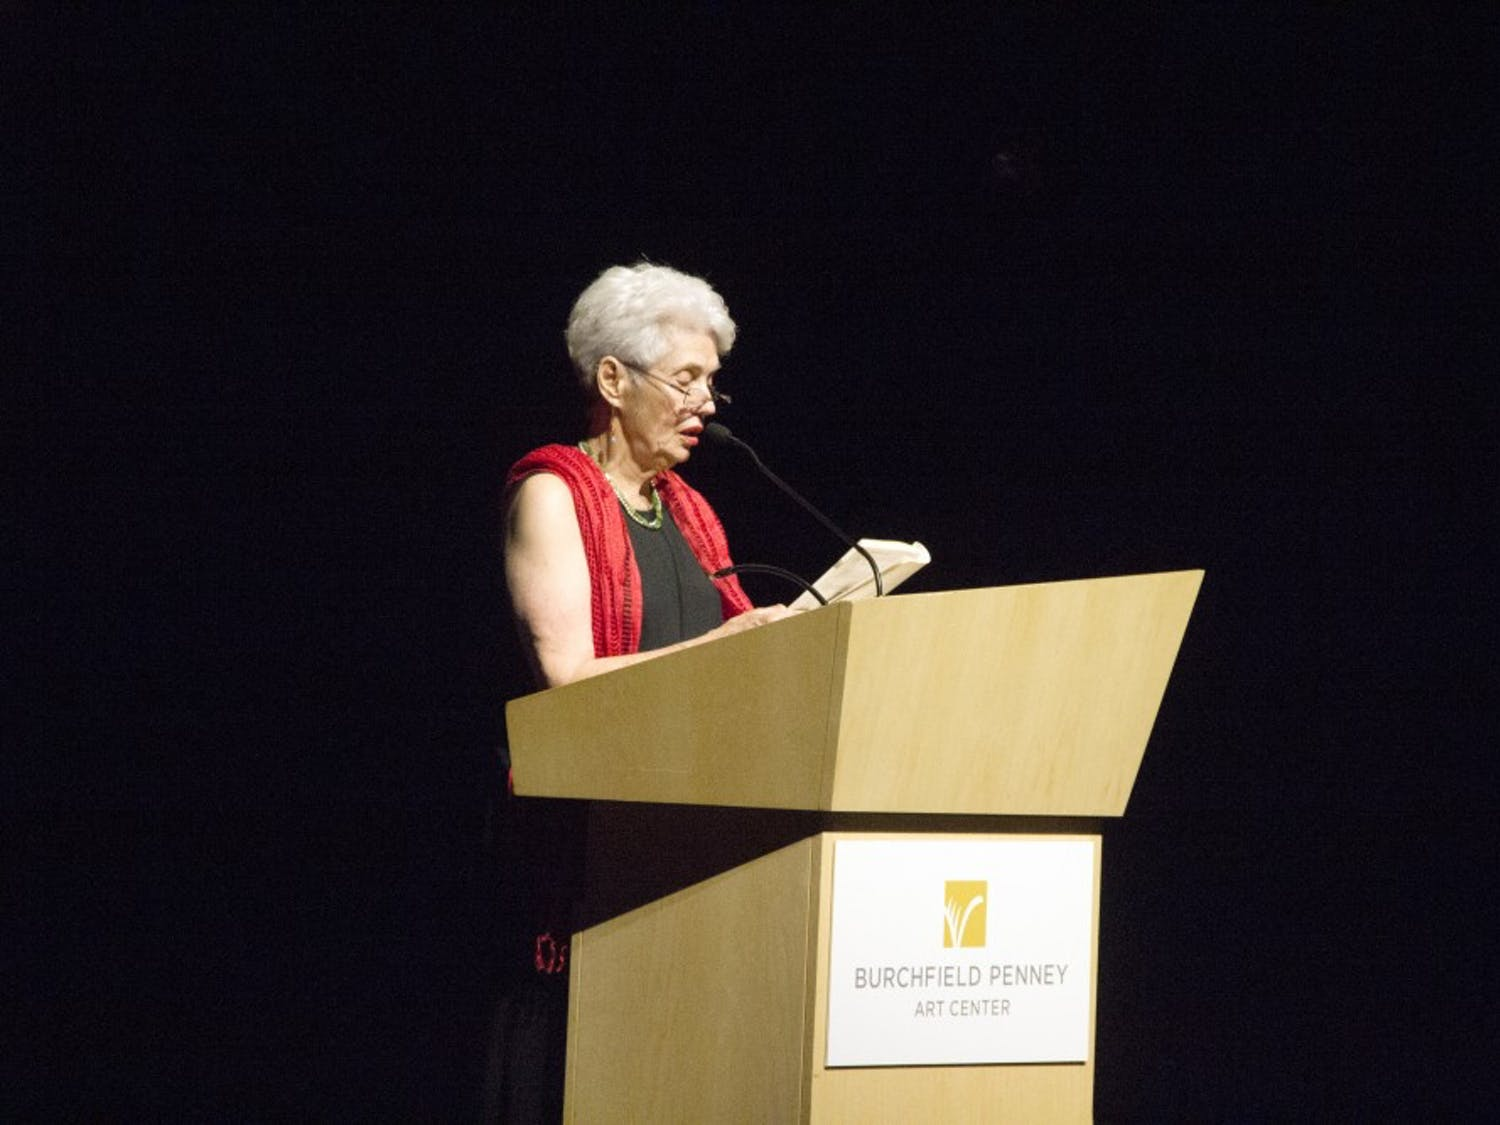 """Cuban-born poet and educator Olga Karman read recollections of her time in Cuba to attendees at the riverrun Global Film Series. The series, in its second year, delivered propaganda films like """"Soy Cuba"""" (I Am Cuba) to packed audiences along with a musical performance by Wendell Rivera."""